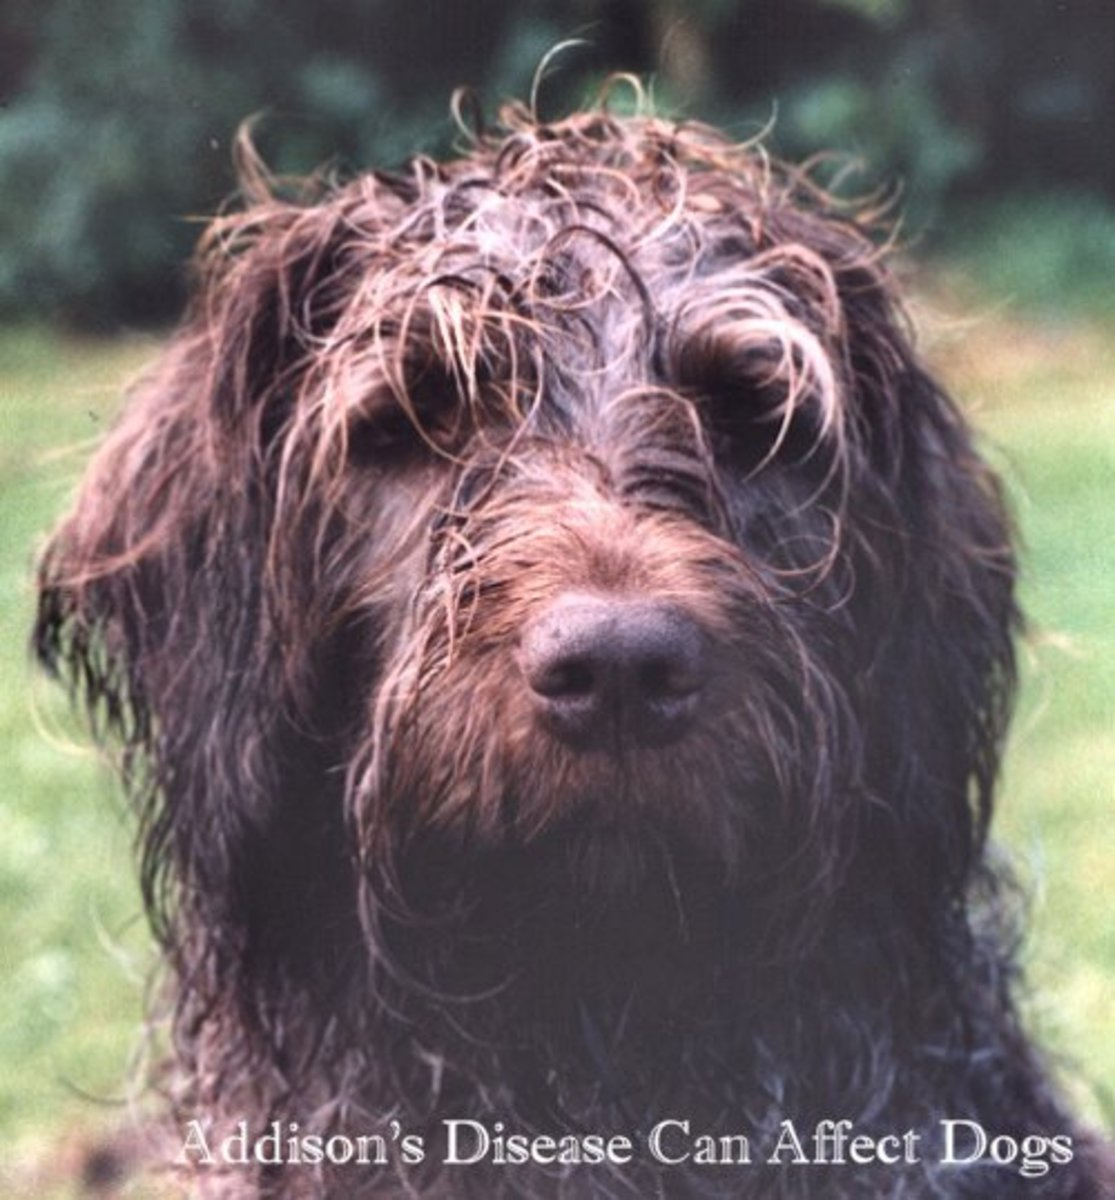 Addison's Disease Can Affect Dogs: Sarah's Story